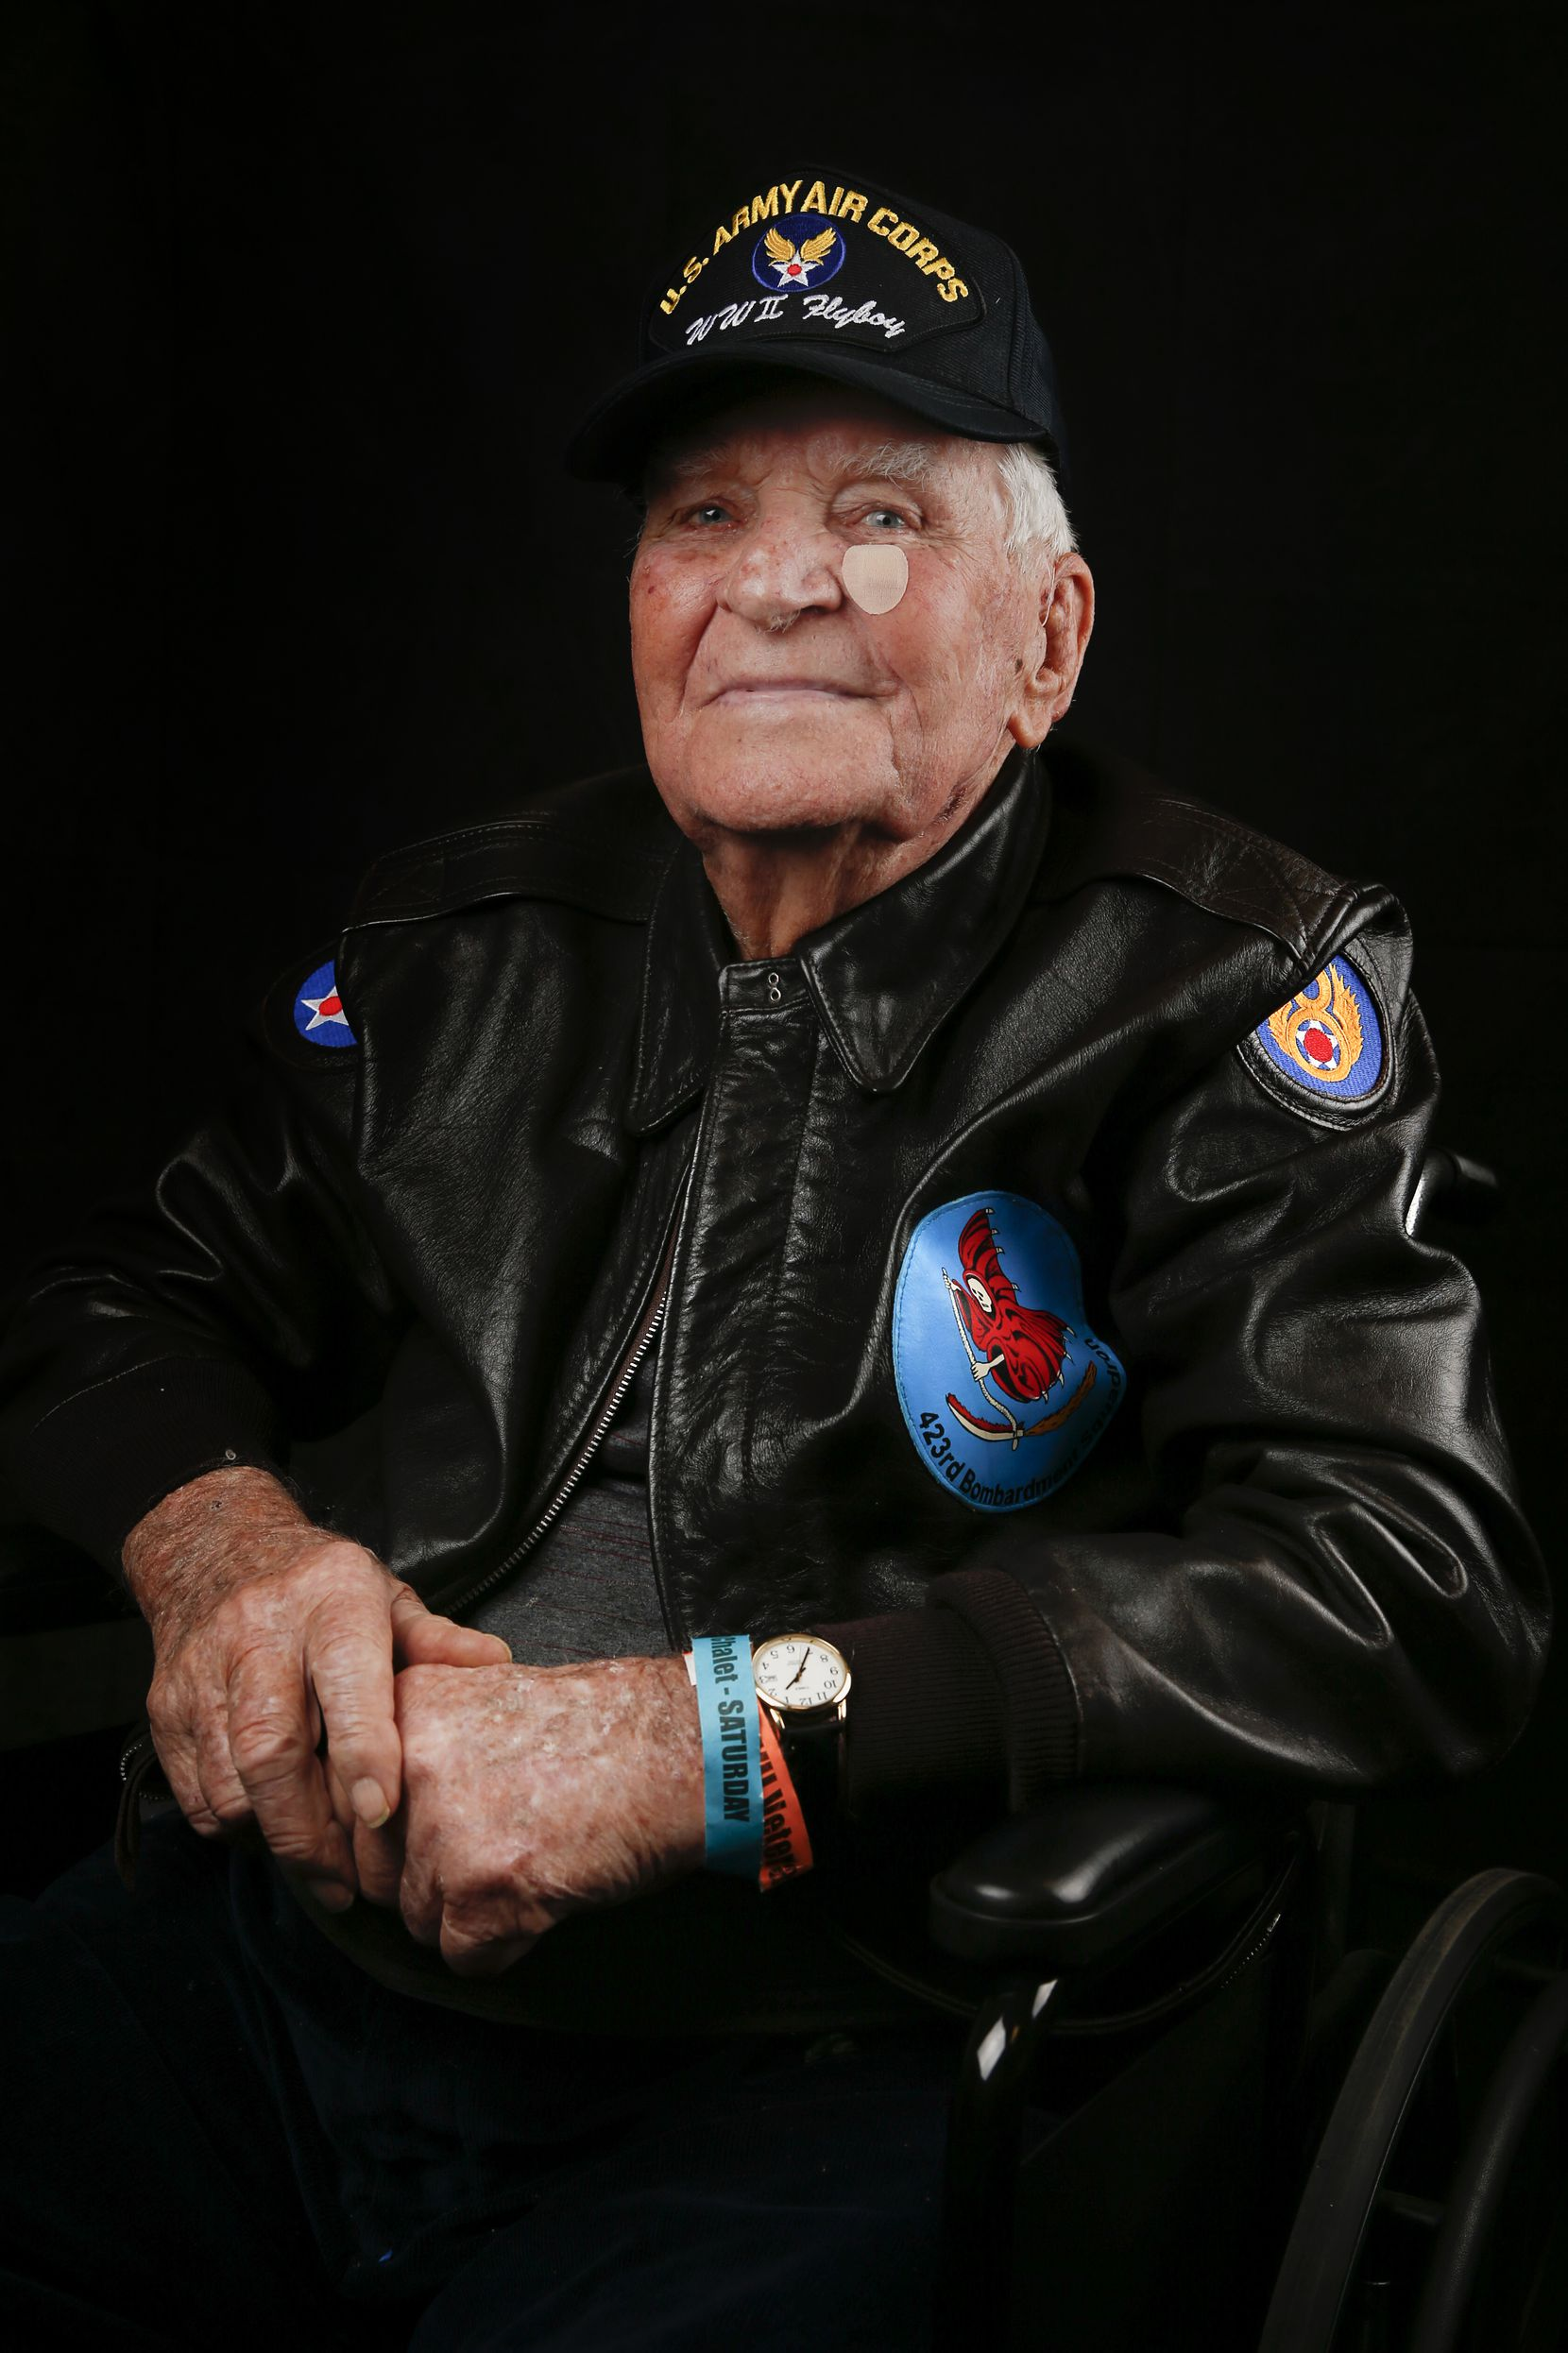 Pete Goodwin, 100, of Lakeside, Texas, a chief master sergeant who served as a World War II B-17 flight engineer in the 8th Air Force, is photographed during the Wings Over Dallas Airshow on Saturday, Oct. 26, 2019 in Dallas.